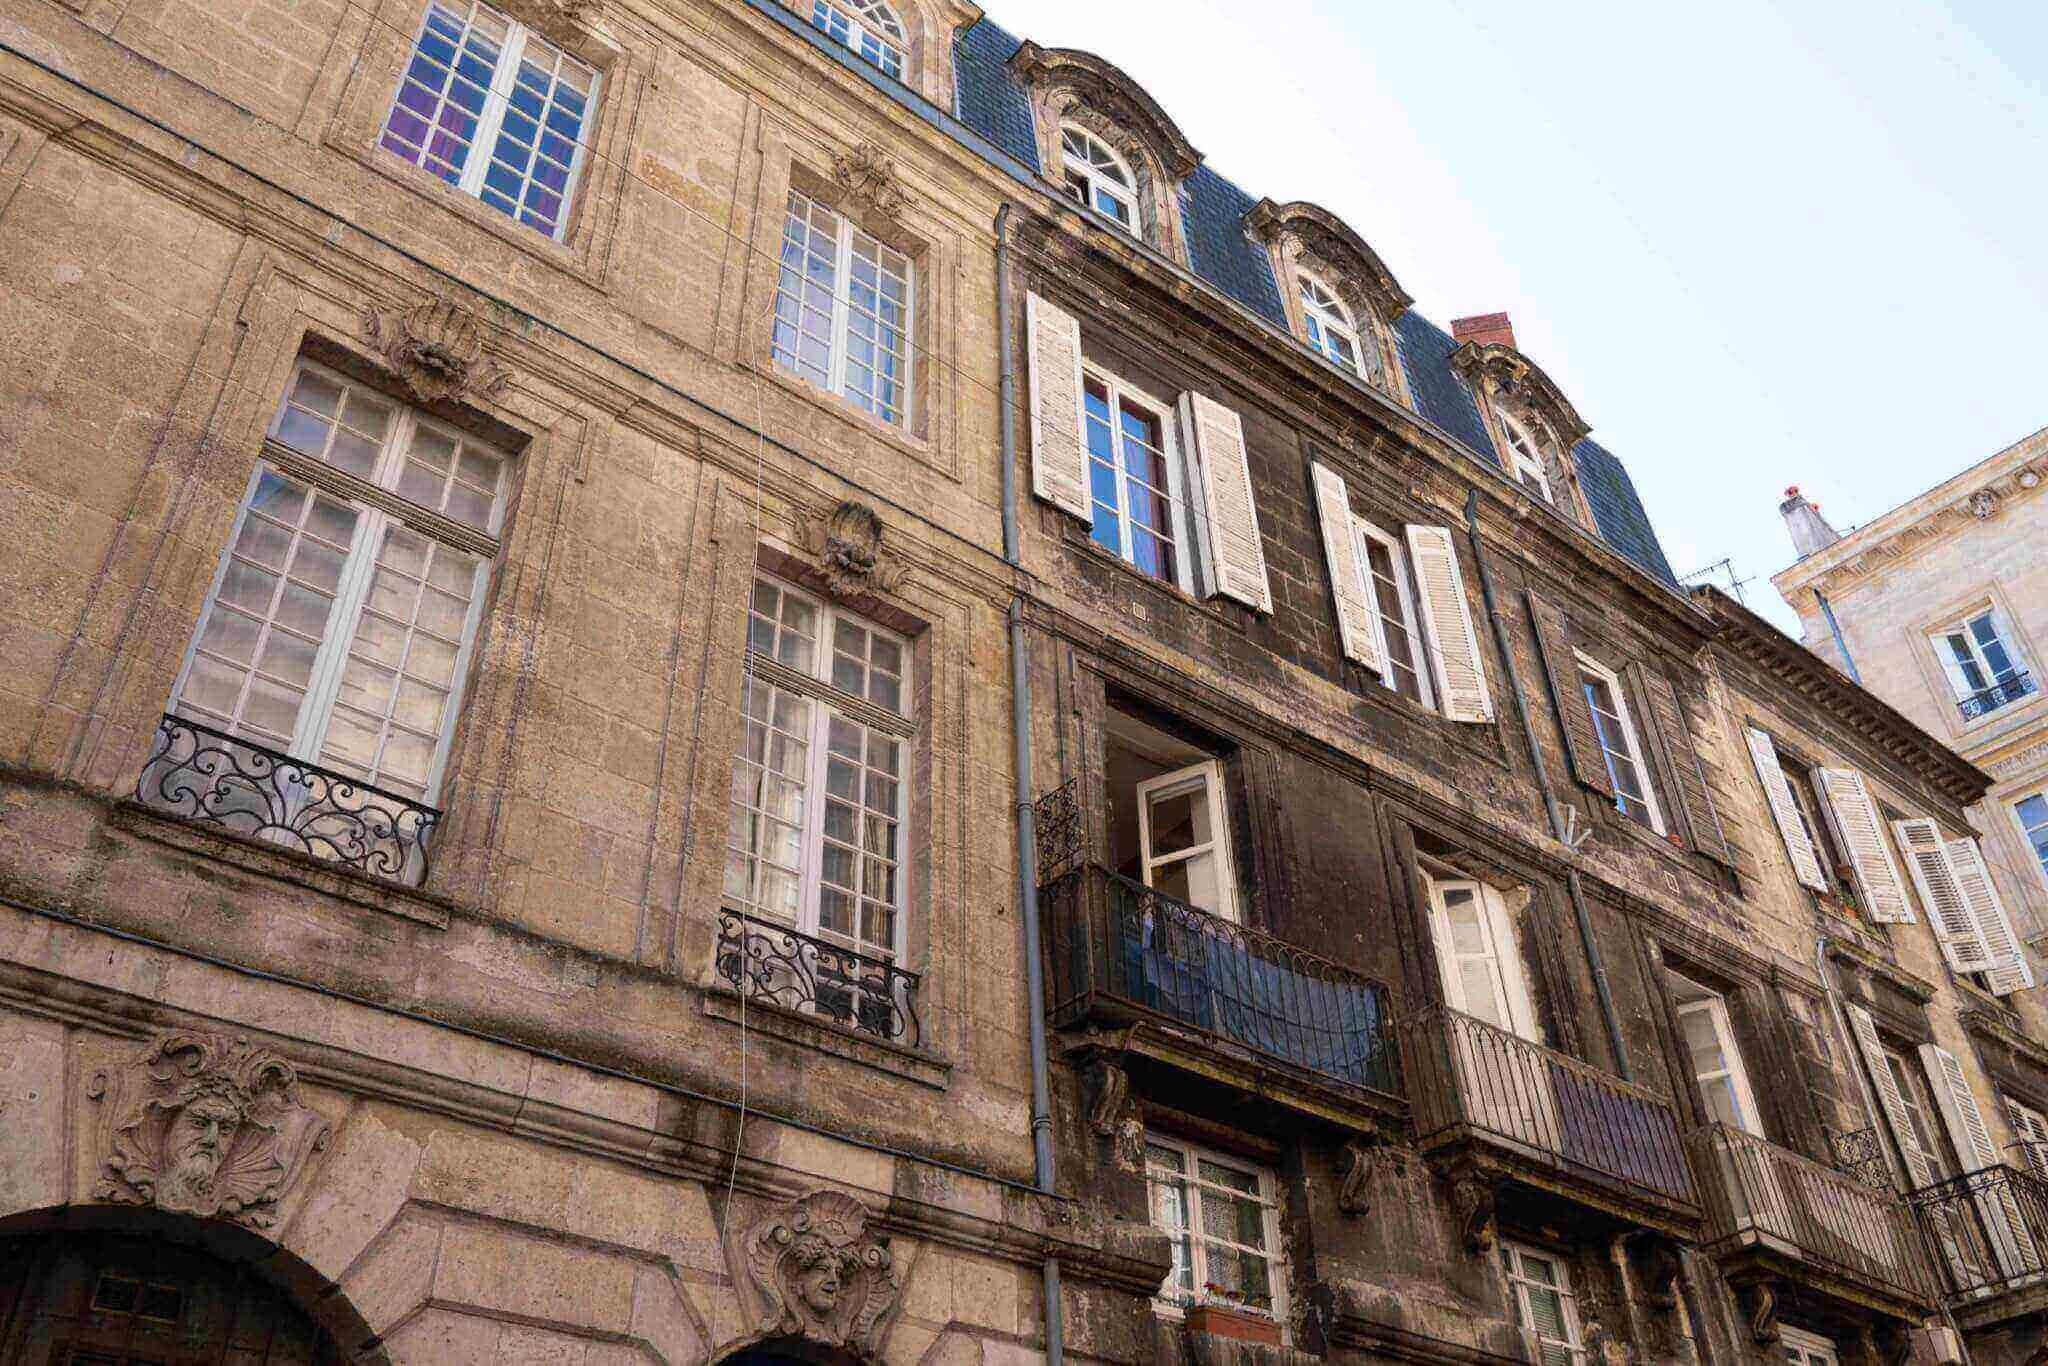 cleaning plaster facades